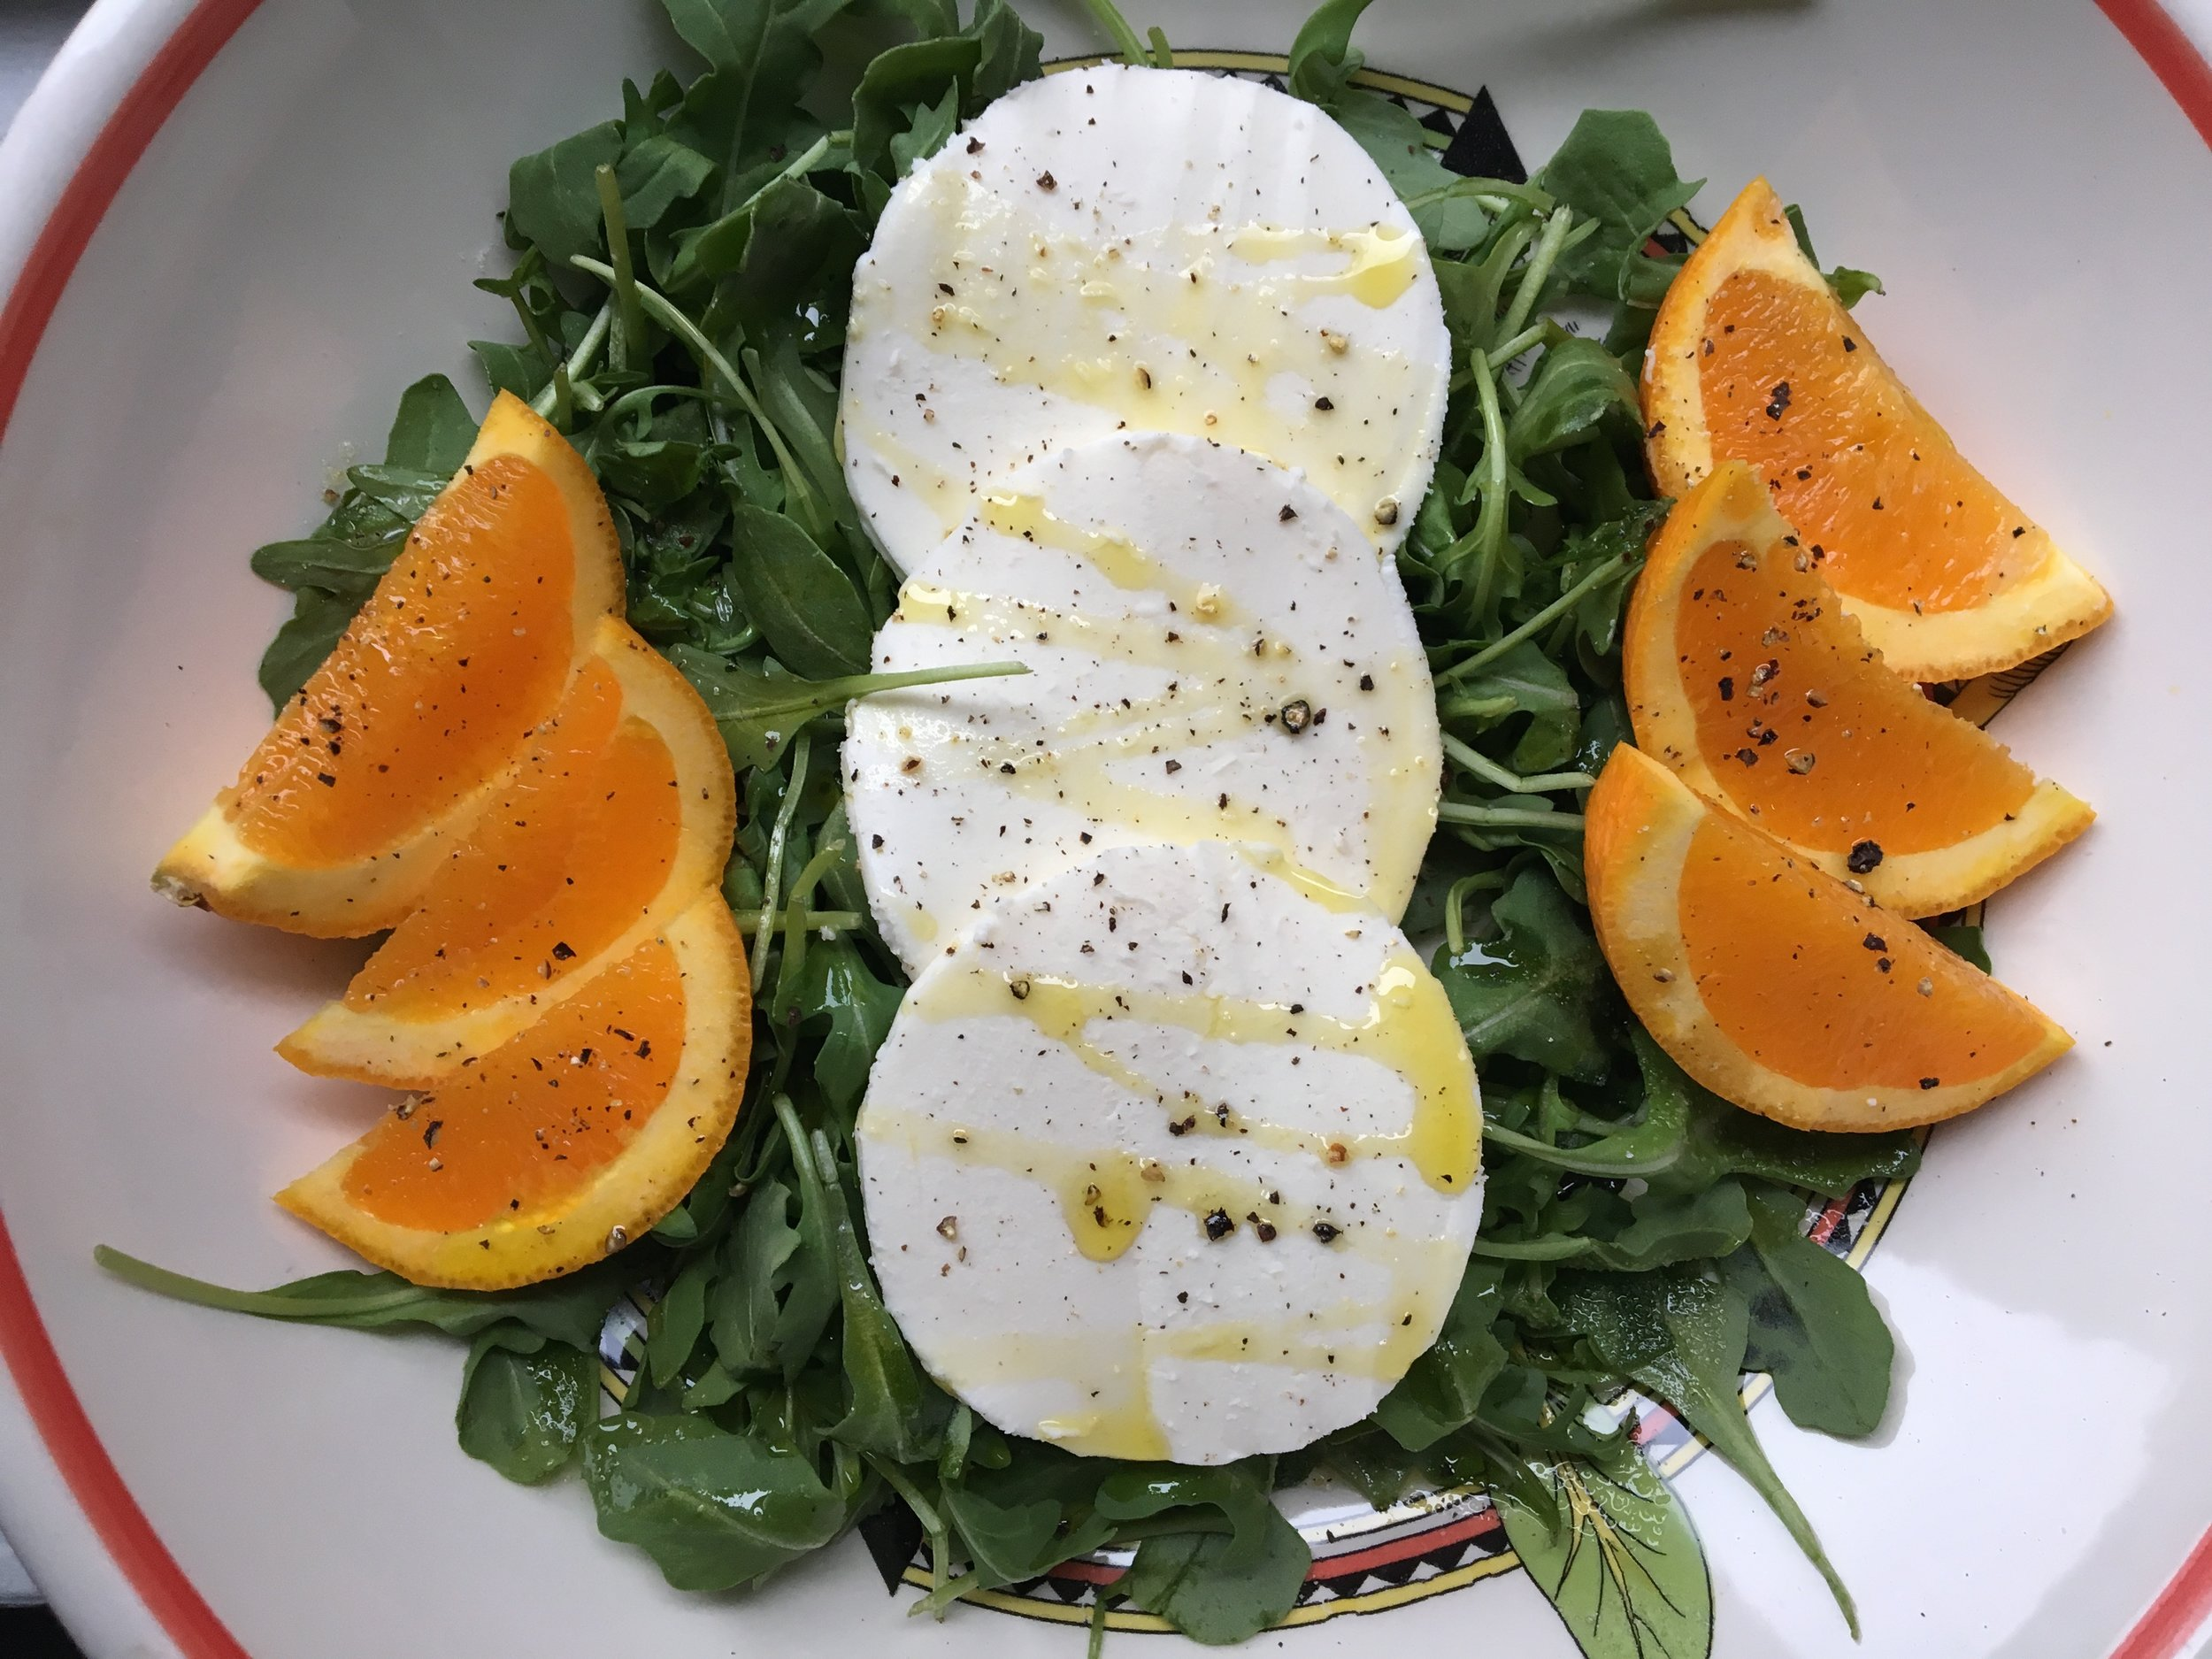 mozzarella + citrus salad